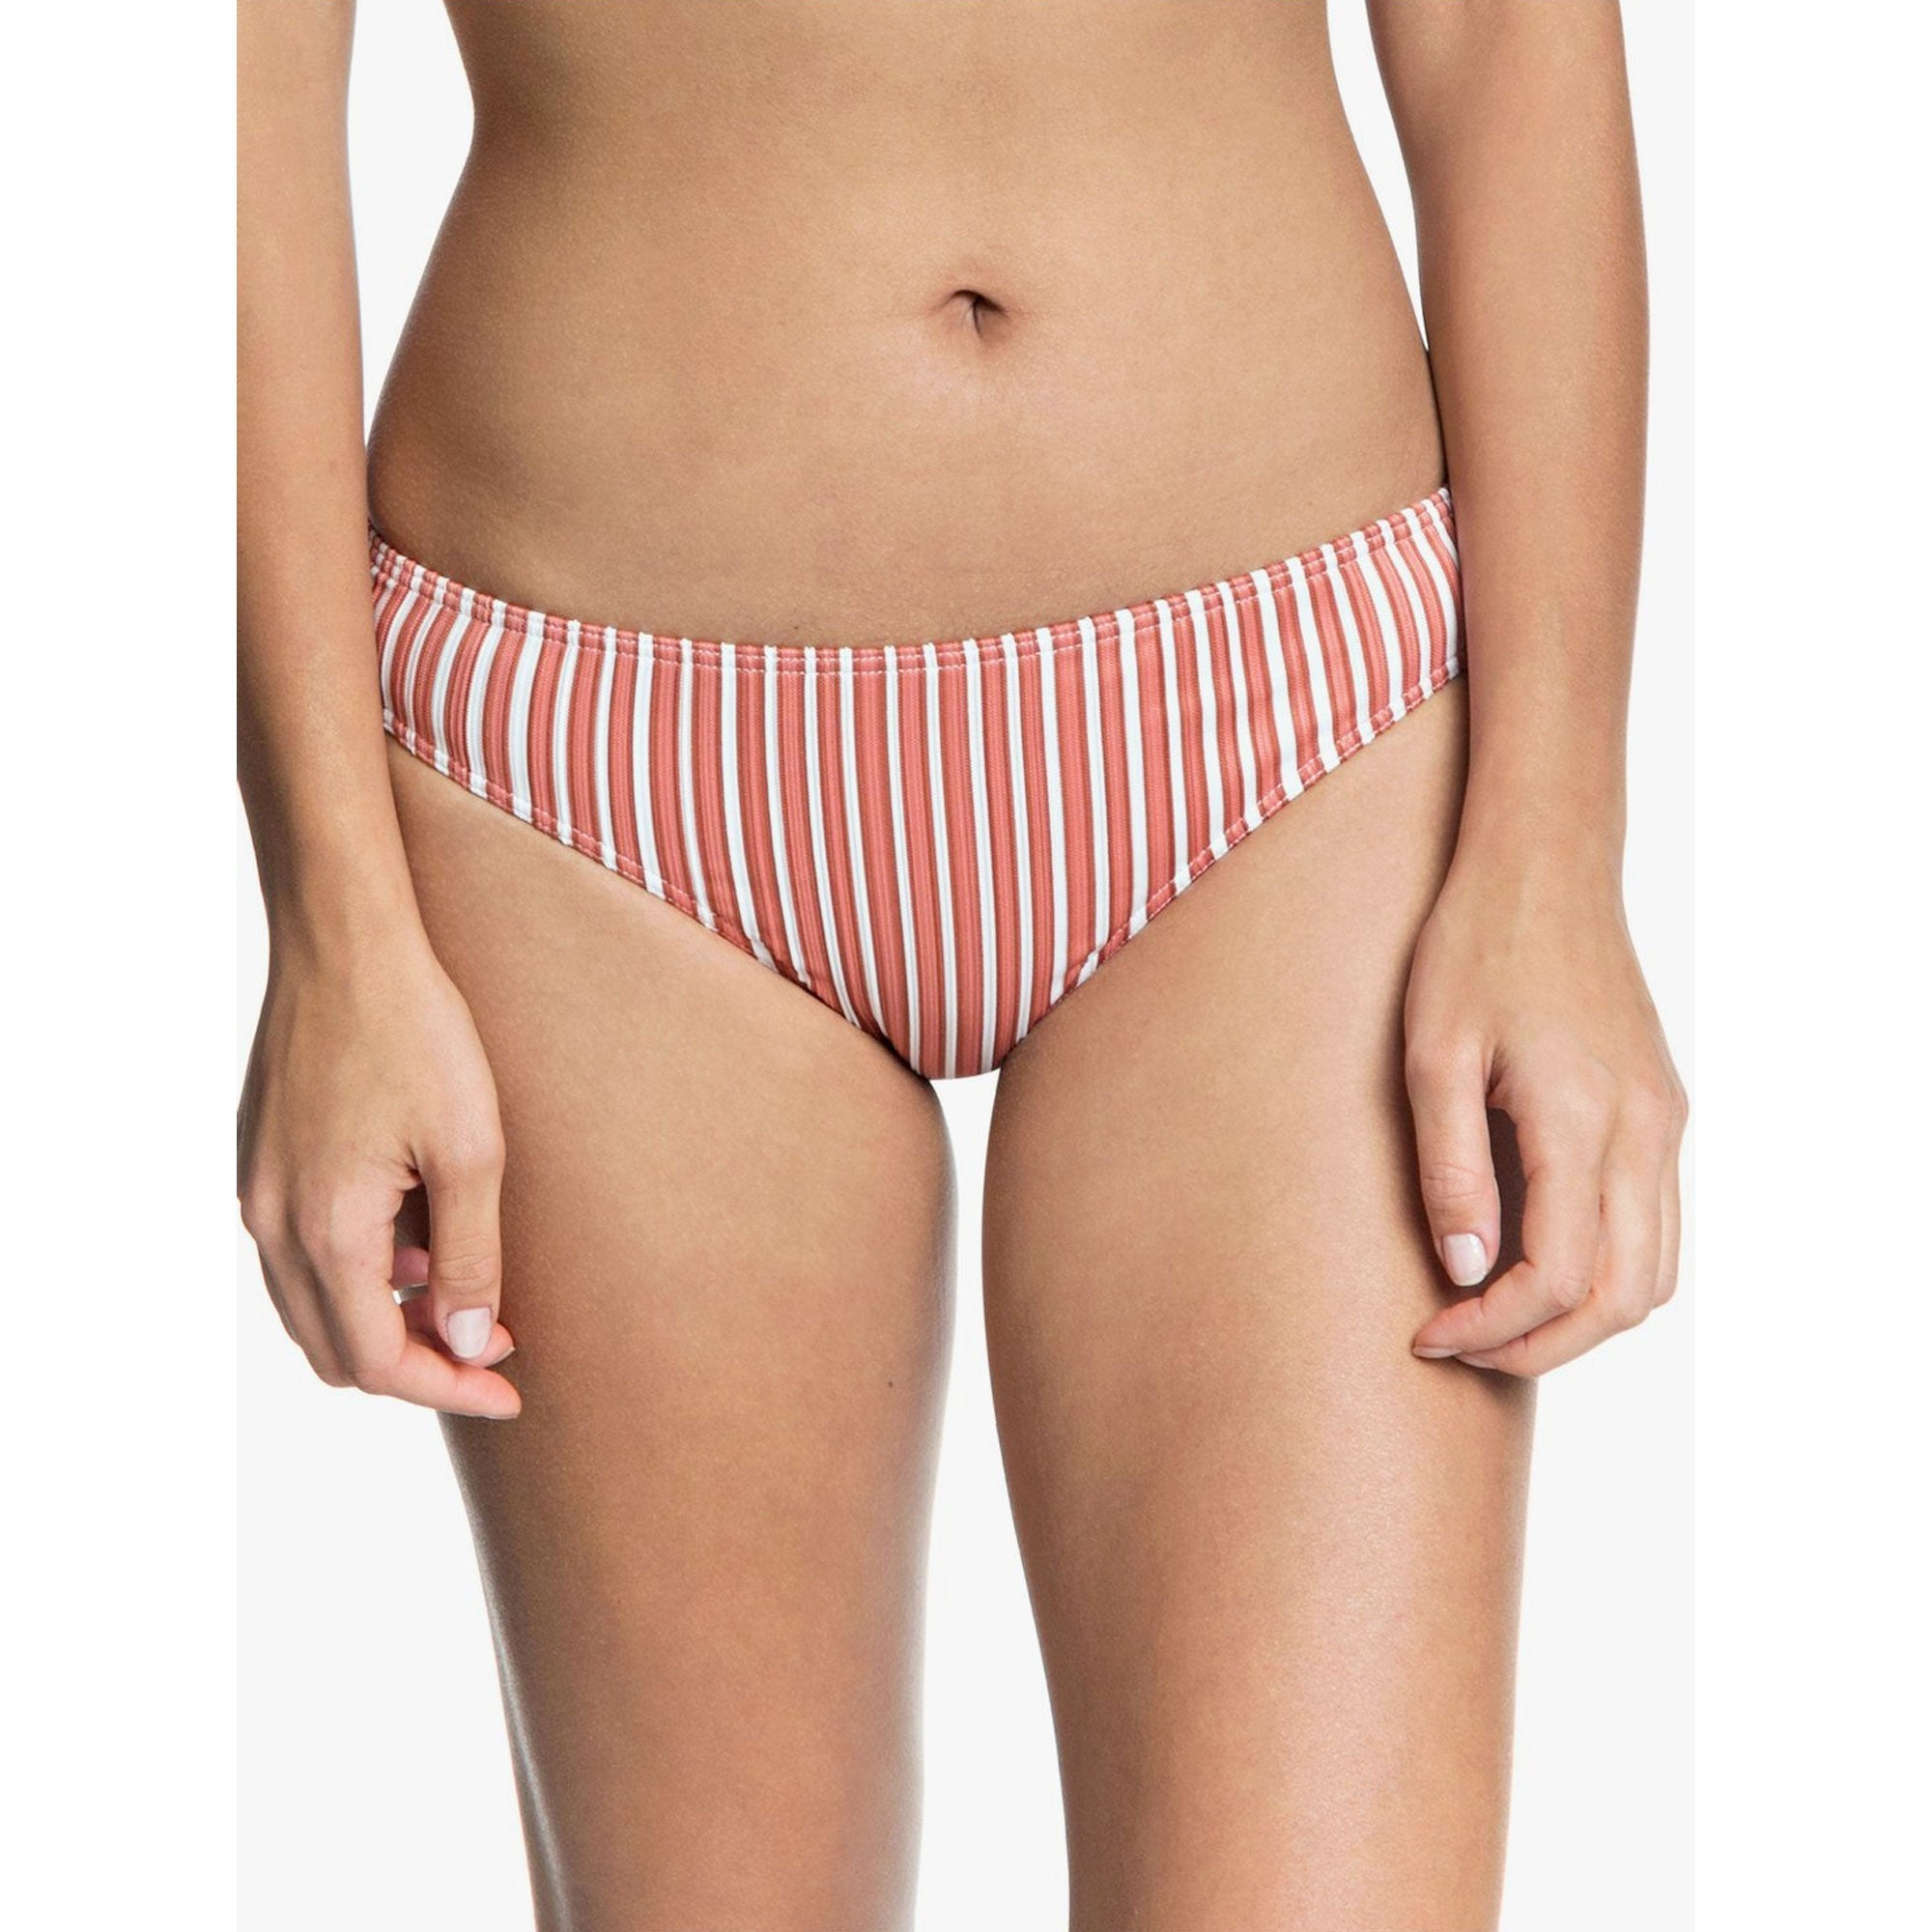 Roxy Sandy Treasure Women's Full Bikini Bottom